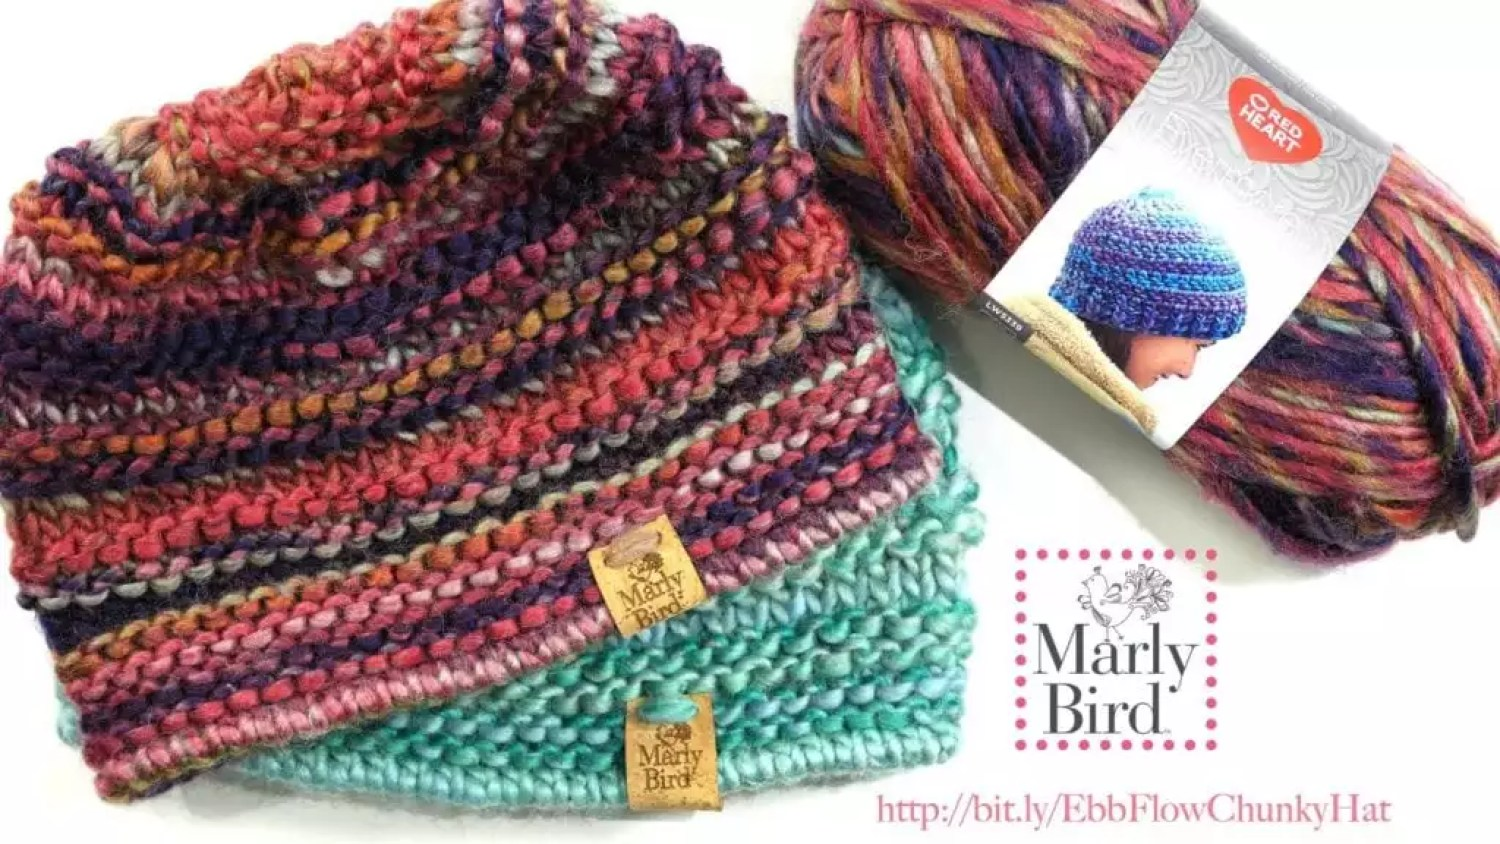 6c77cd88a Ebb and Flow Chunky Knit Hat - Marly Bird™